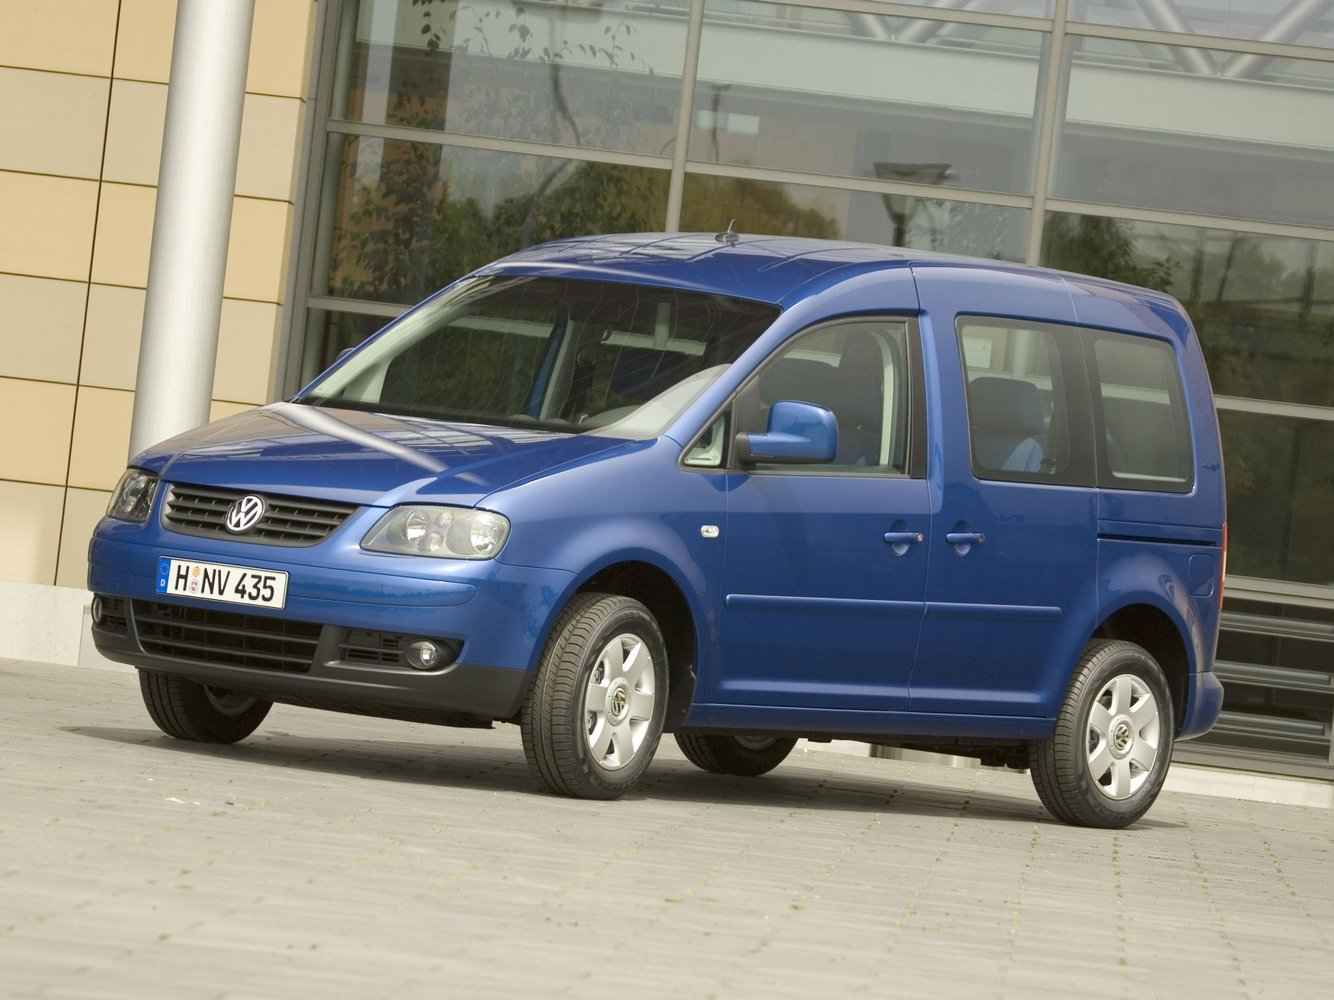 Volkswagen Caddy 2004 - 2010